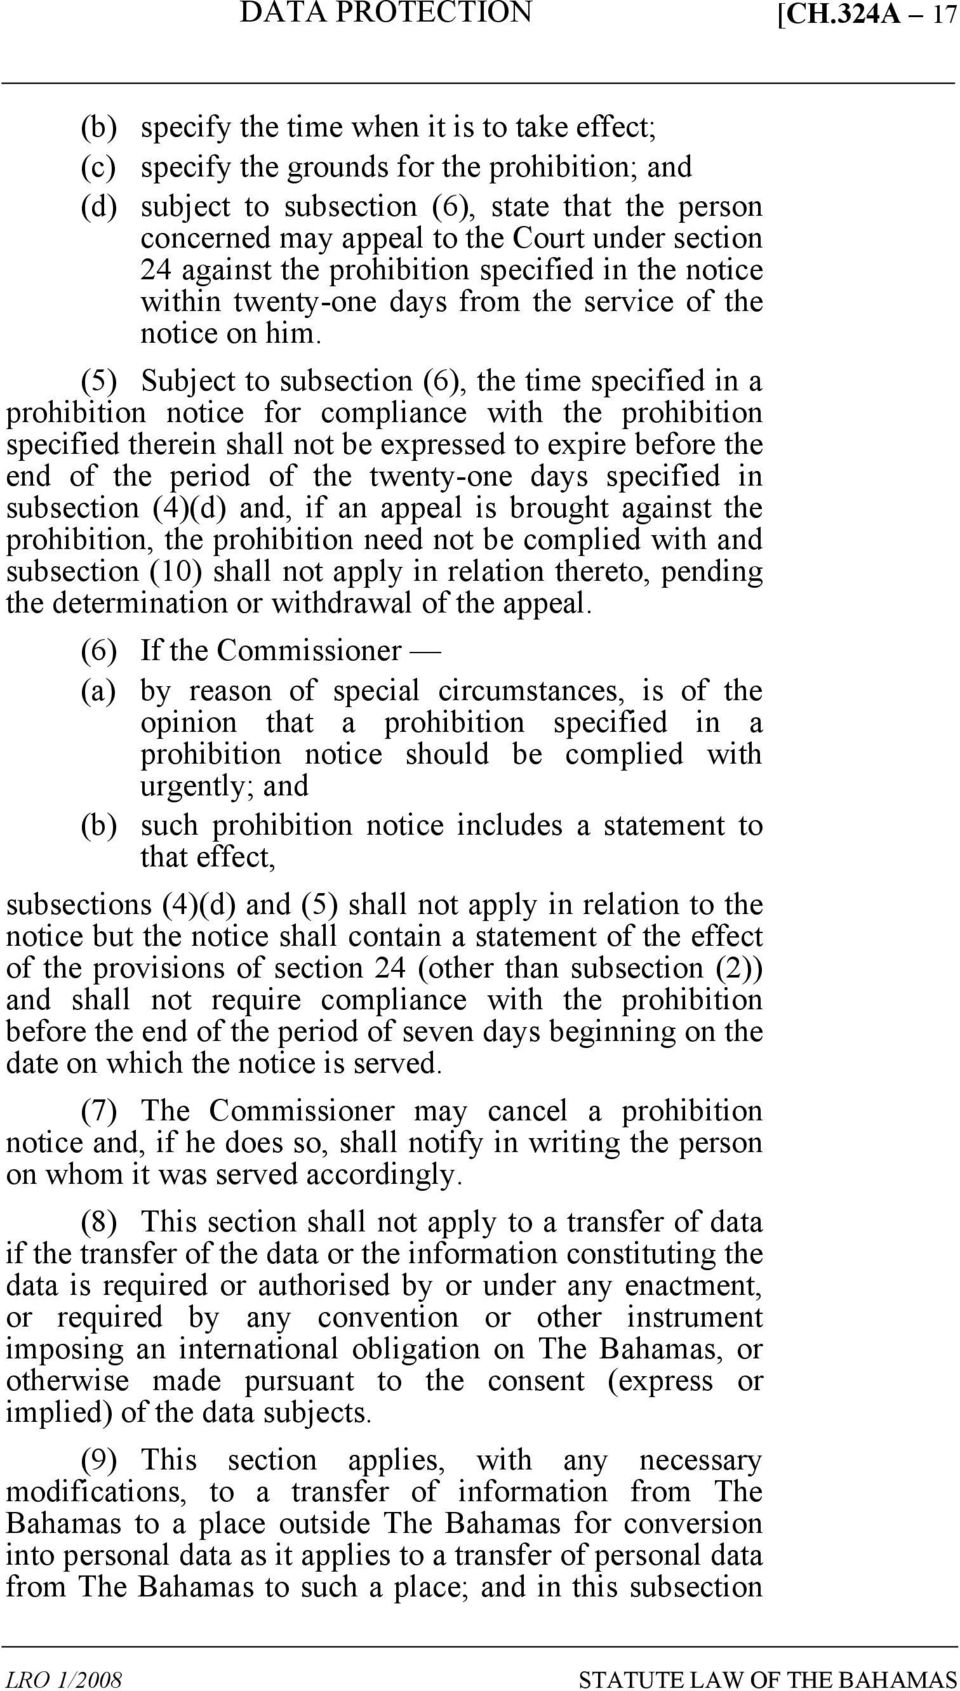 (5) Subject to subsection (6), the time specified in a prohibition notice for compliance with the prohibition specified therein shall not be expressed to expire before the end of the period of the